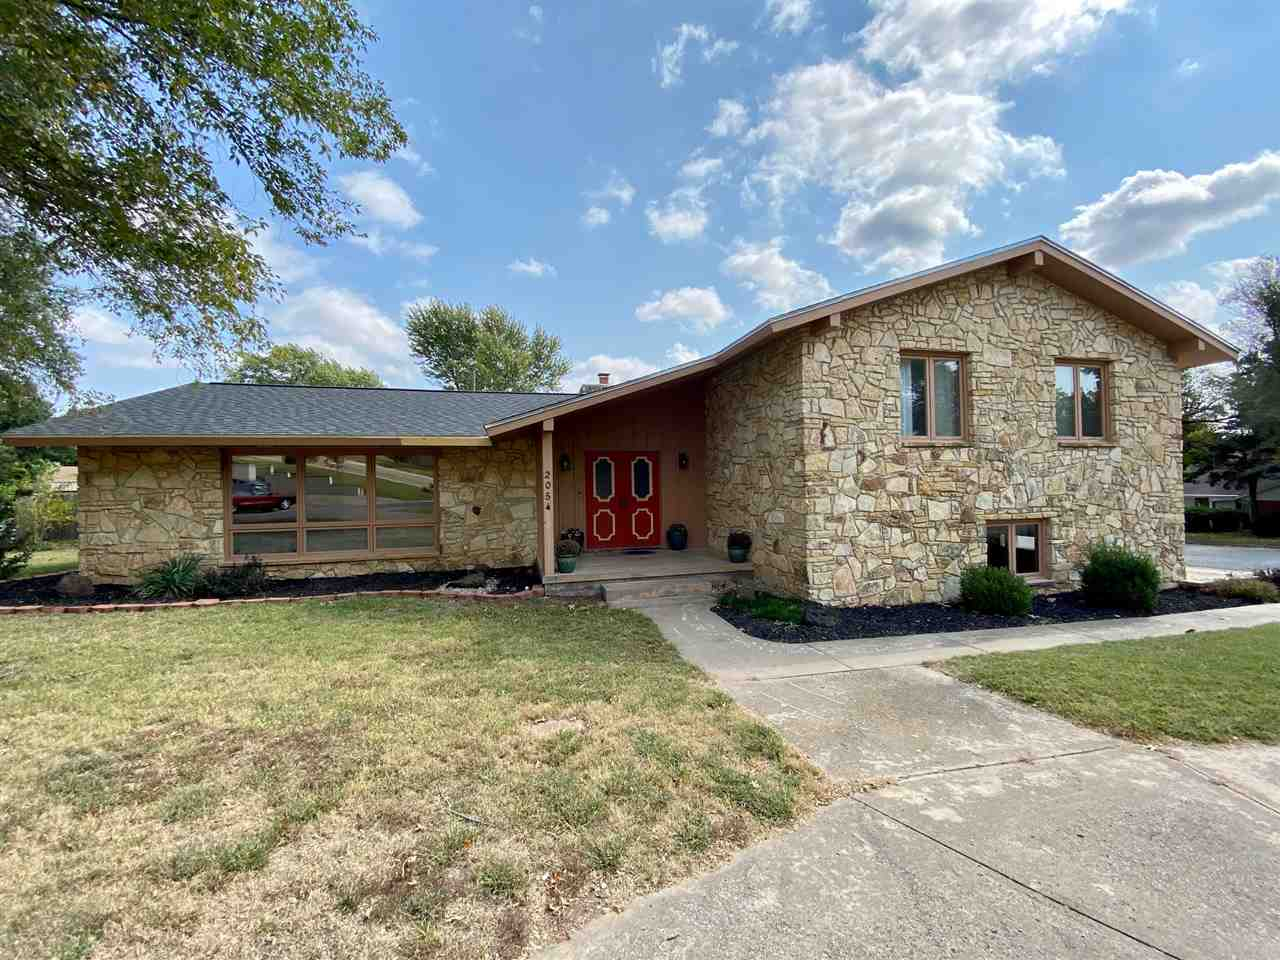 Wow! This home will check all of your checkboxes and more! Located in an excellent neighborhood on a large corner lot with plenty of parking this gorgeous stone home is sure to impress! With over 2700 sqft, 4 bedrooms, 2 full baths and 2 half baths, and partial  basement it plenty big for a large family with space left over!  You will not have to worry about how to entertain the kids next summer because they will be thrilled to find an inground gunite pool with automatic pool cover to keep them busy! Additionally, the home has had a brand new roof and seller will offer flooring allowance at closing with acceptable offer! Hurry and call listing agent today before this home is gone!